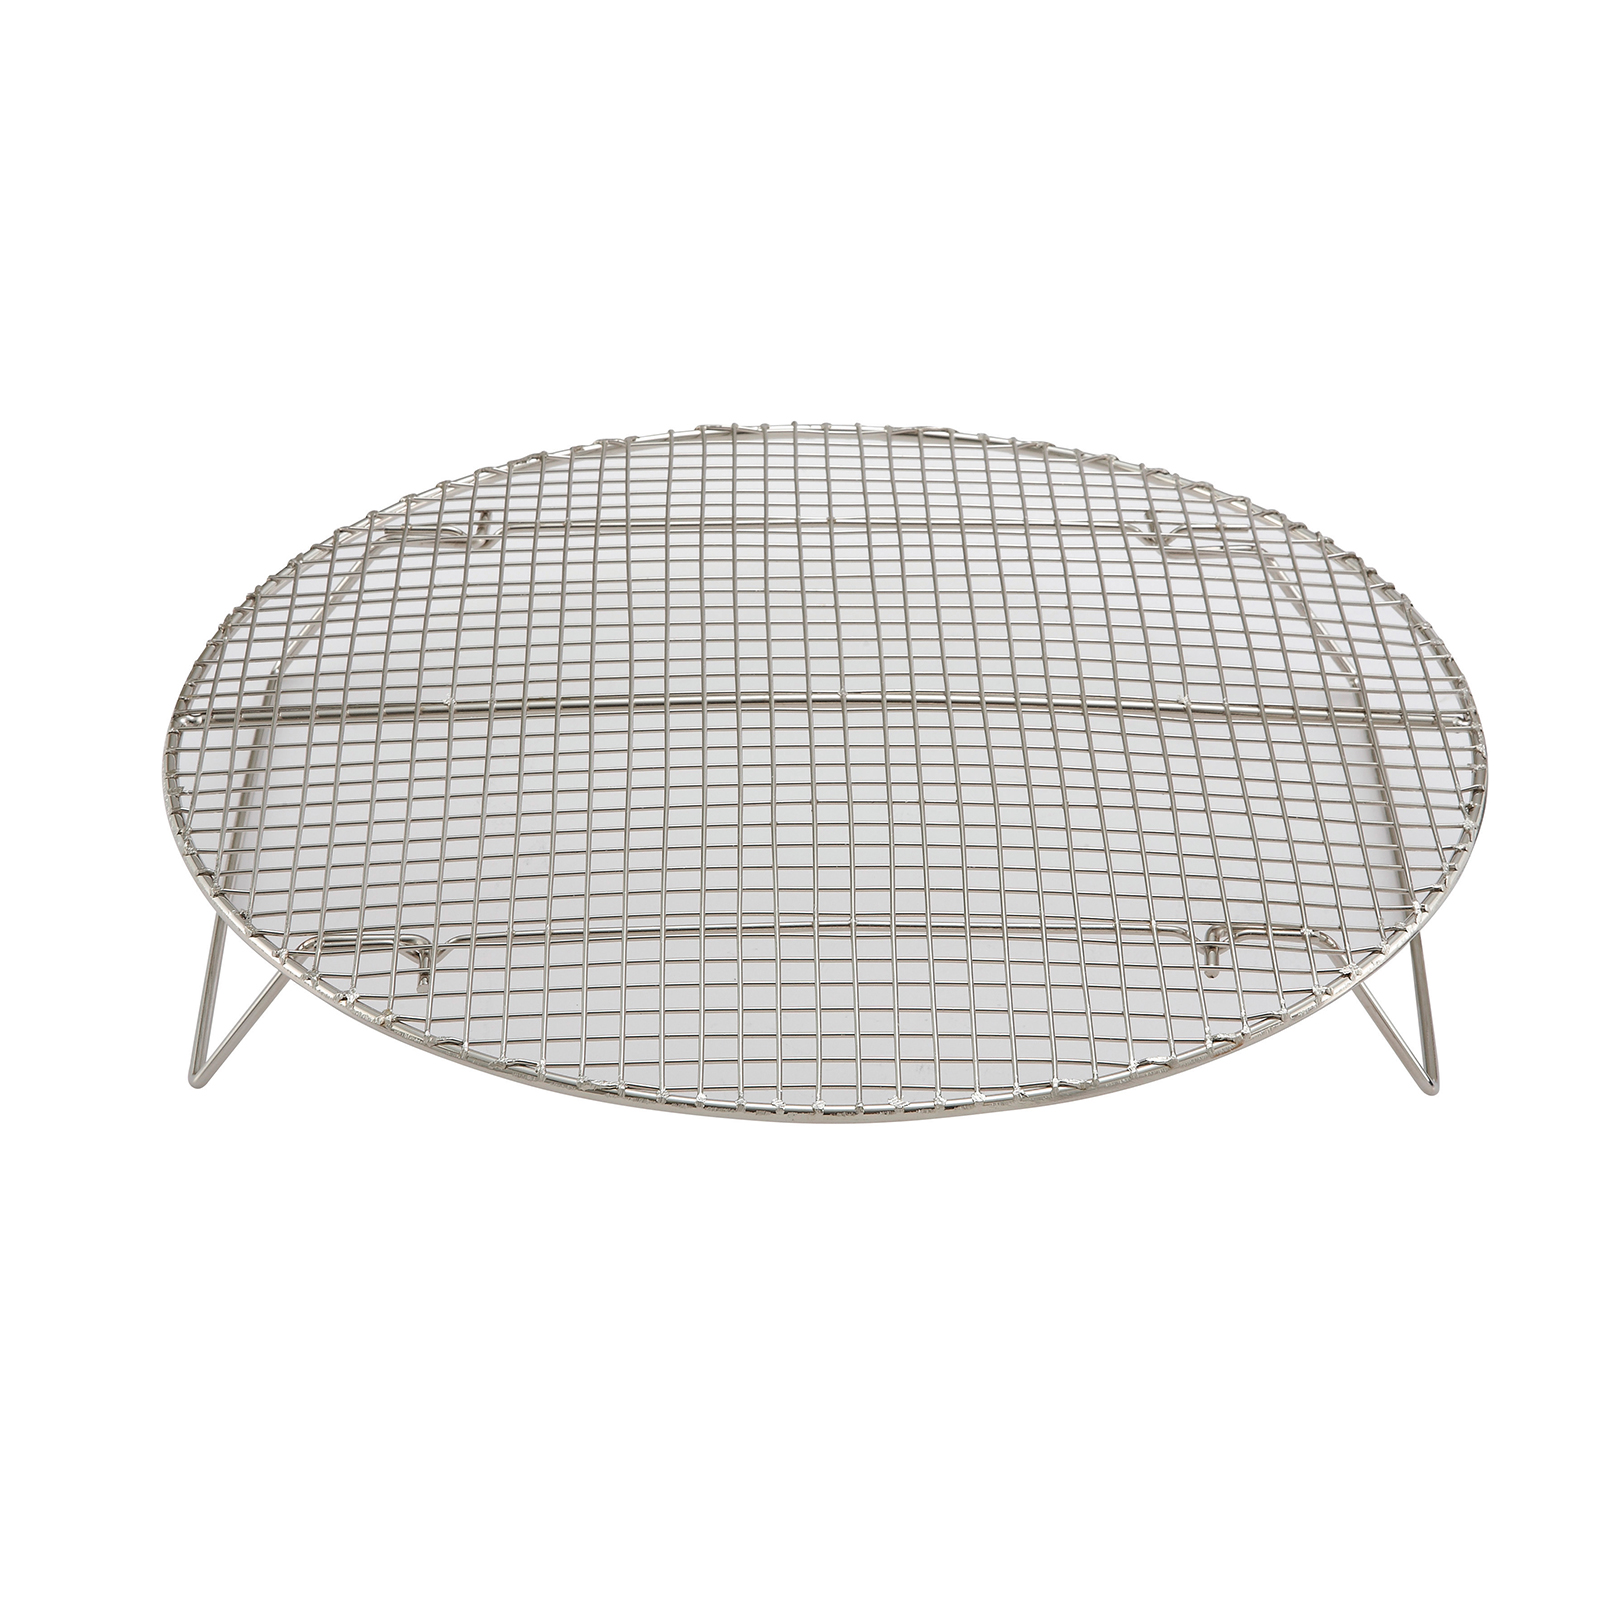 1000-33 Winco STR-13 wire pan rack / grate